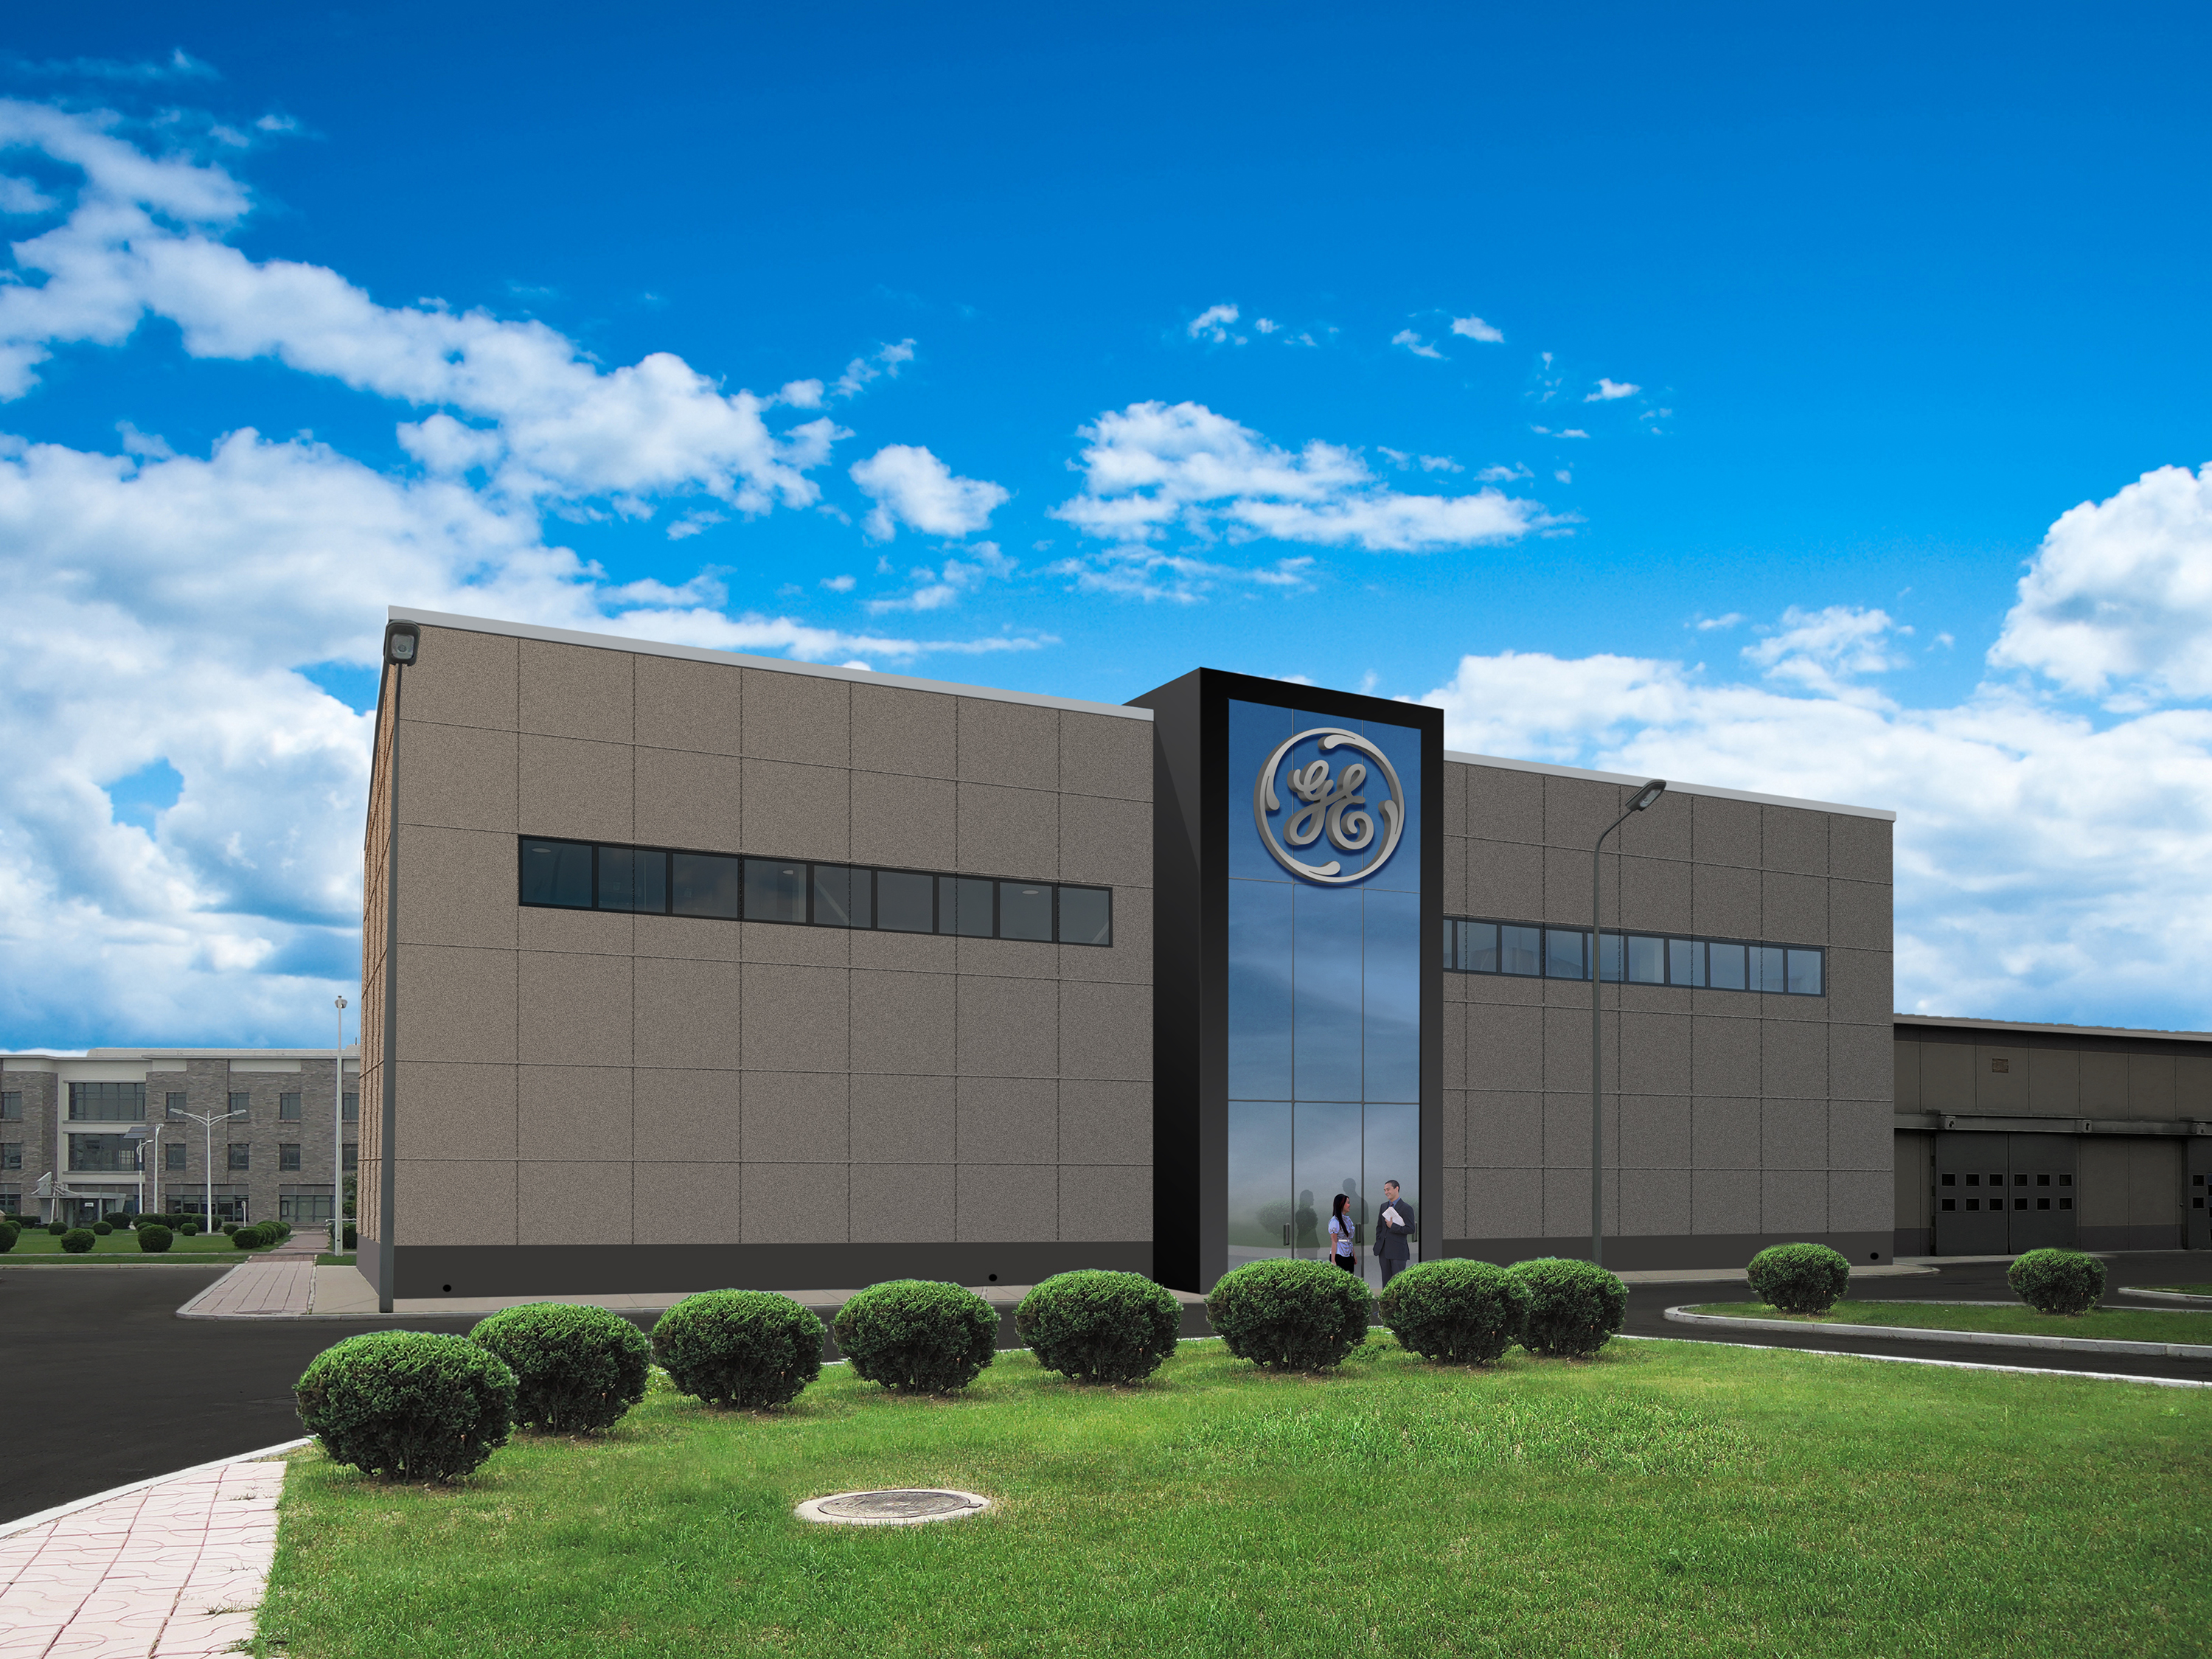 GE to build wind education centre in China